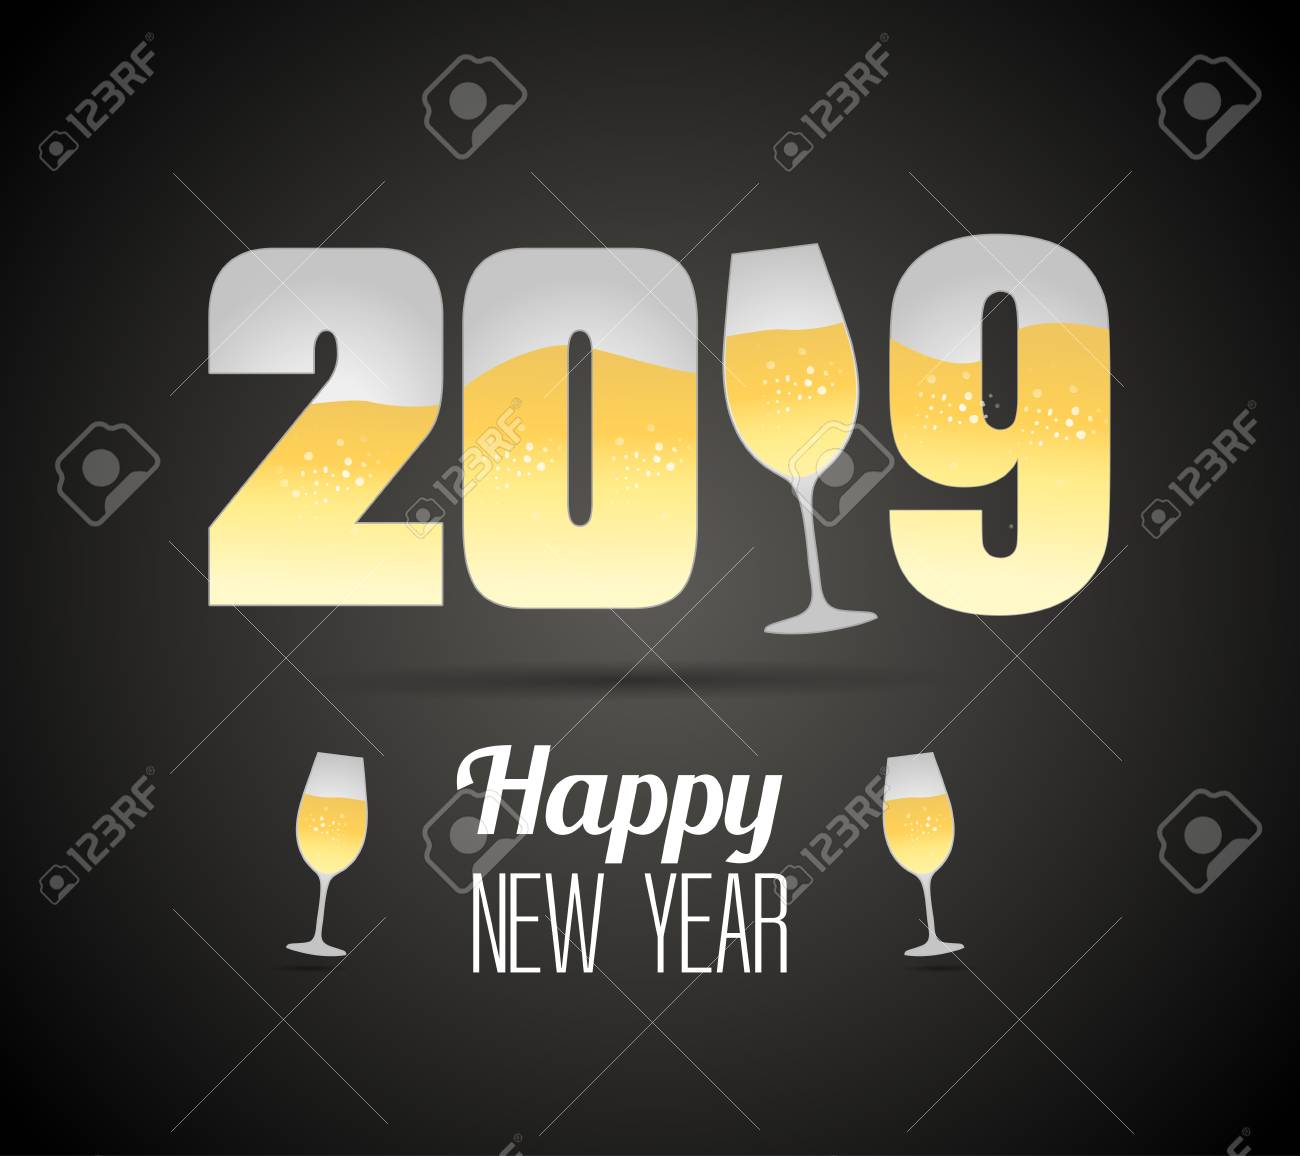 happy new year 2019 template vector illustration with champagne glasses stock vector 98015171